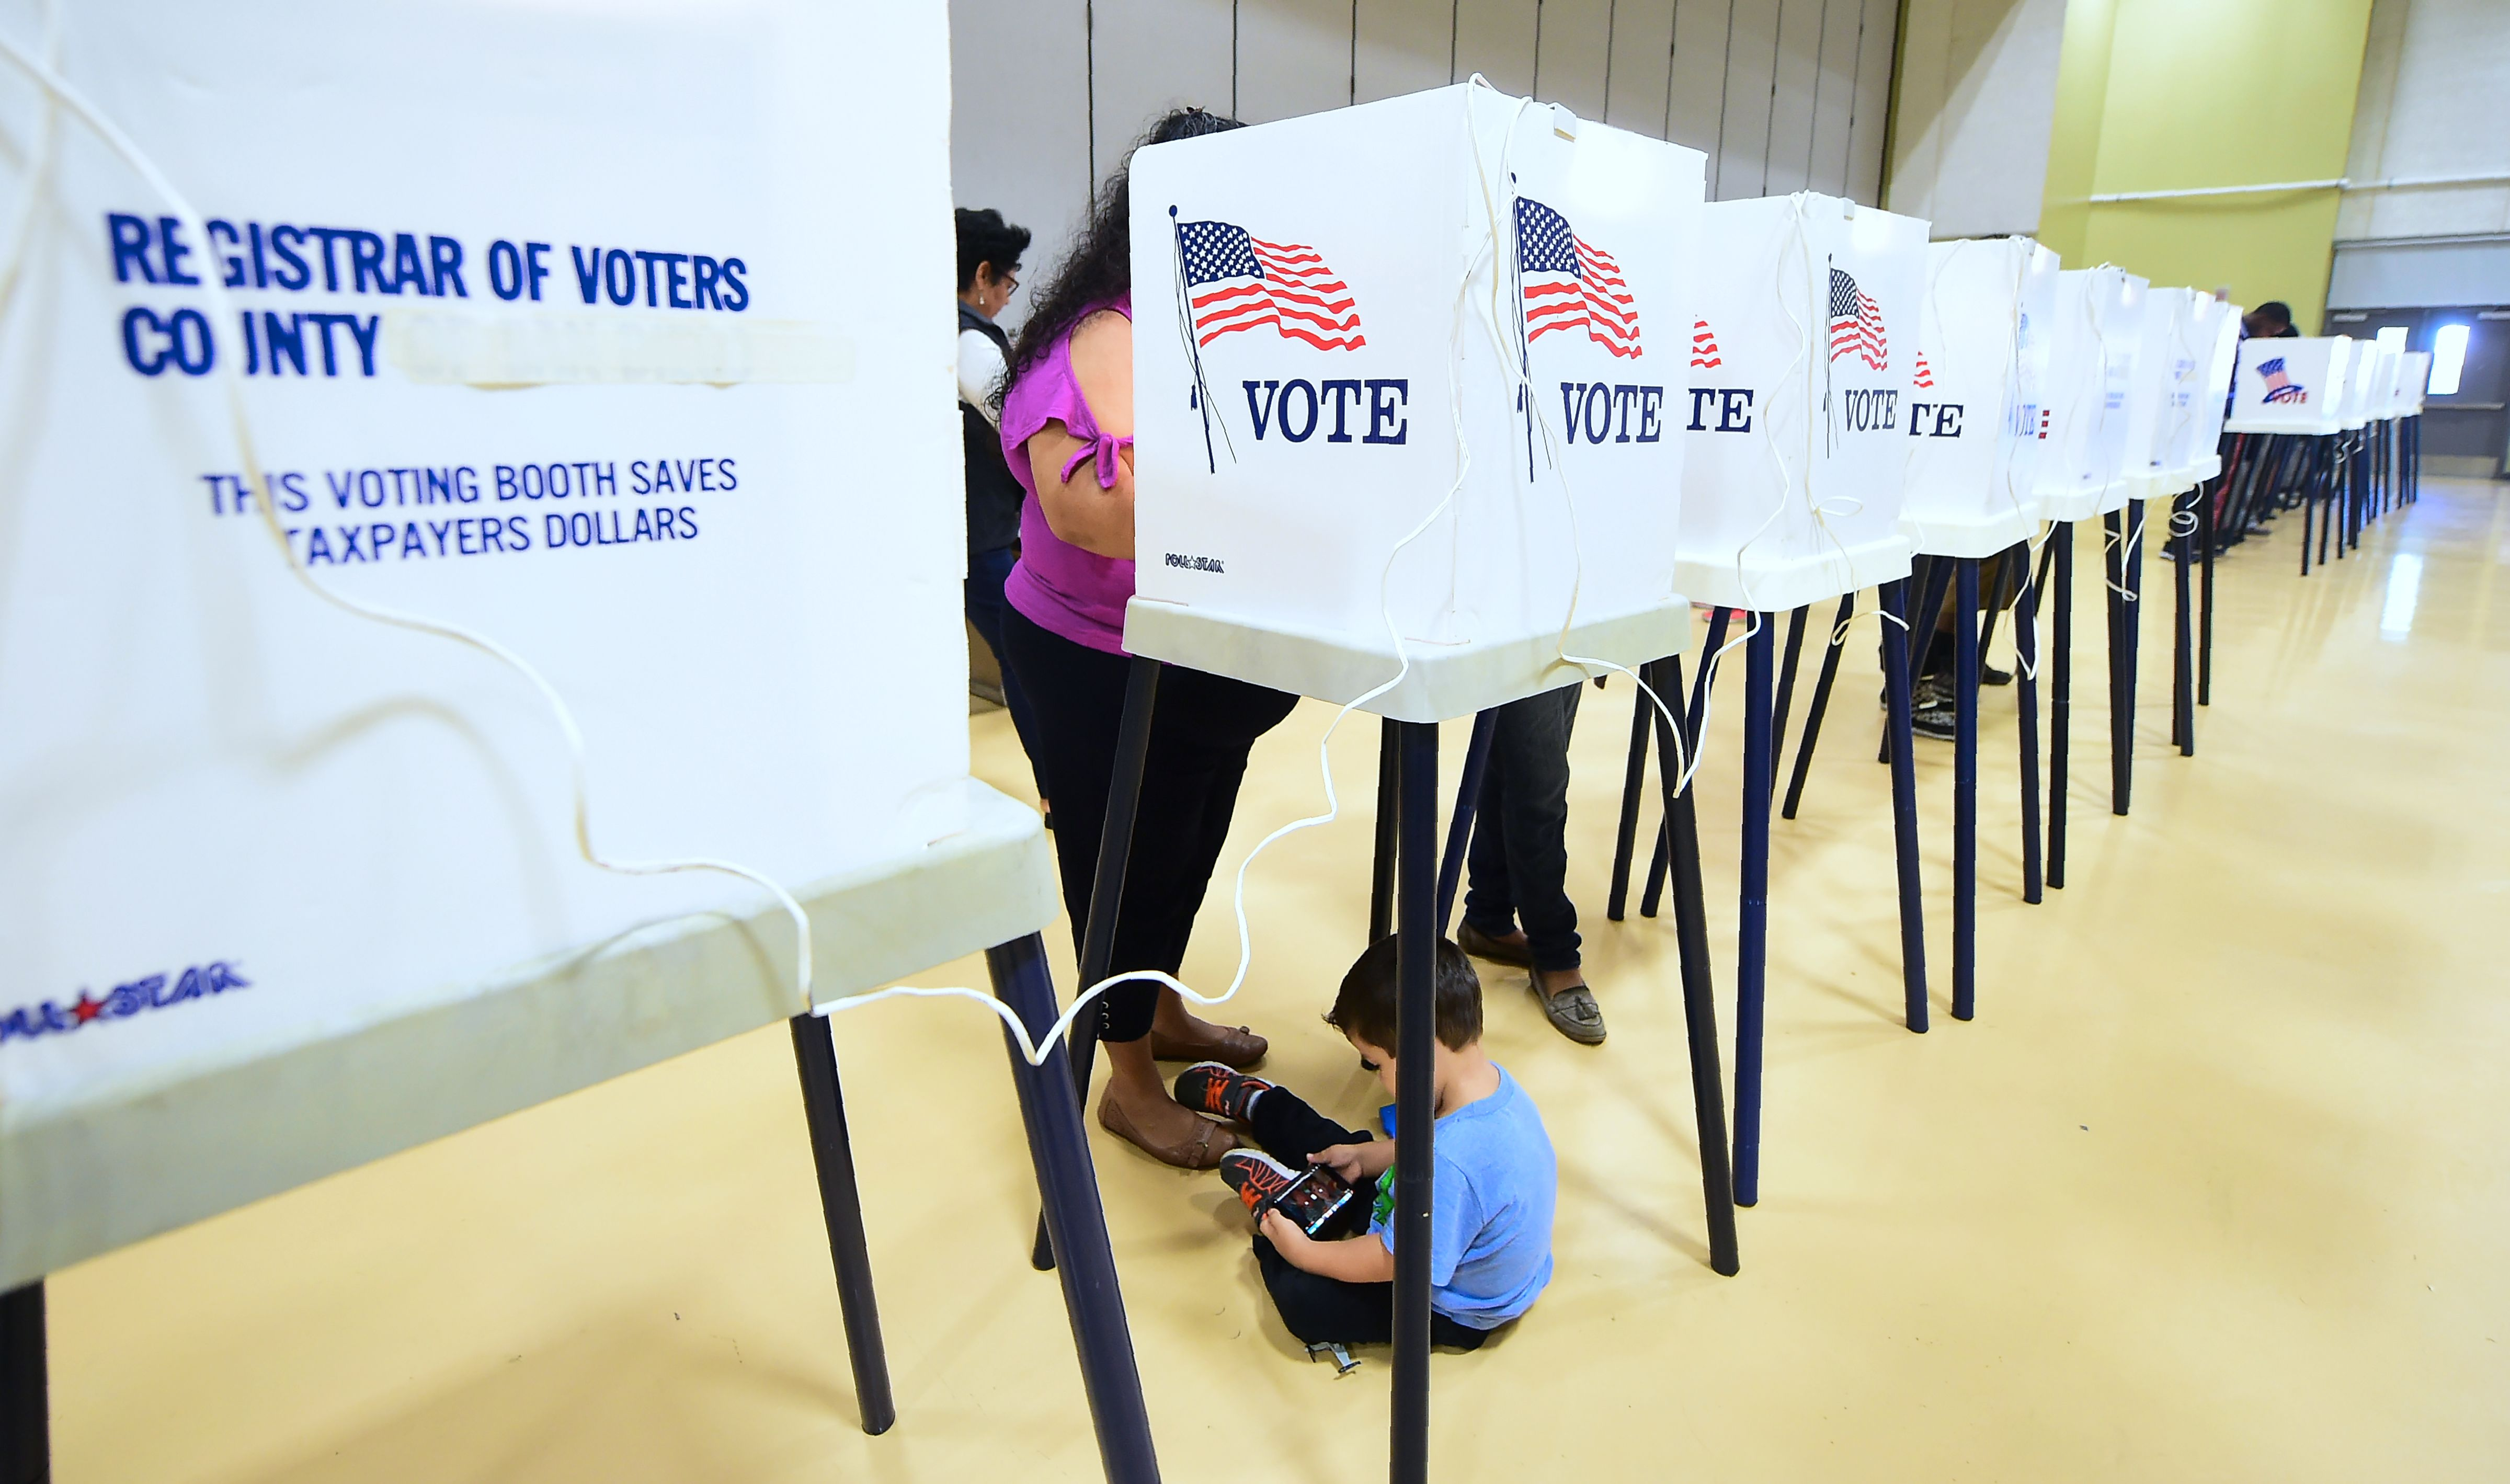 A woman votes from a booth as her child plays with a cellphone below inside the gymnasium at the Barack Obama Prep Academy on November 6, 2018 in Los Angeles, California. - Americans started voting Tuesday in critical midterm elections that mark the first major voter test of Donald Trump's controversial presidency, with control of Congress at stake. About three quarters of the 50 states in the east and center of the country were already voting as polls began opening at 6:00 am (1100 GMT) for the day-long ballot.